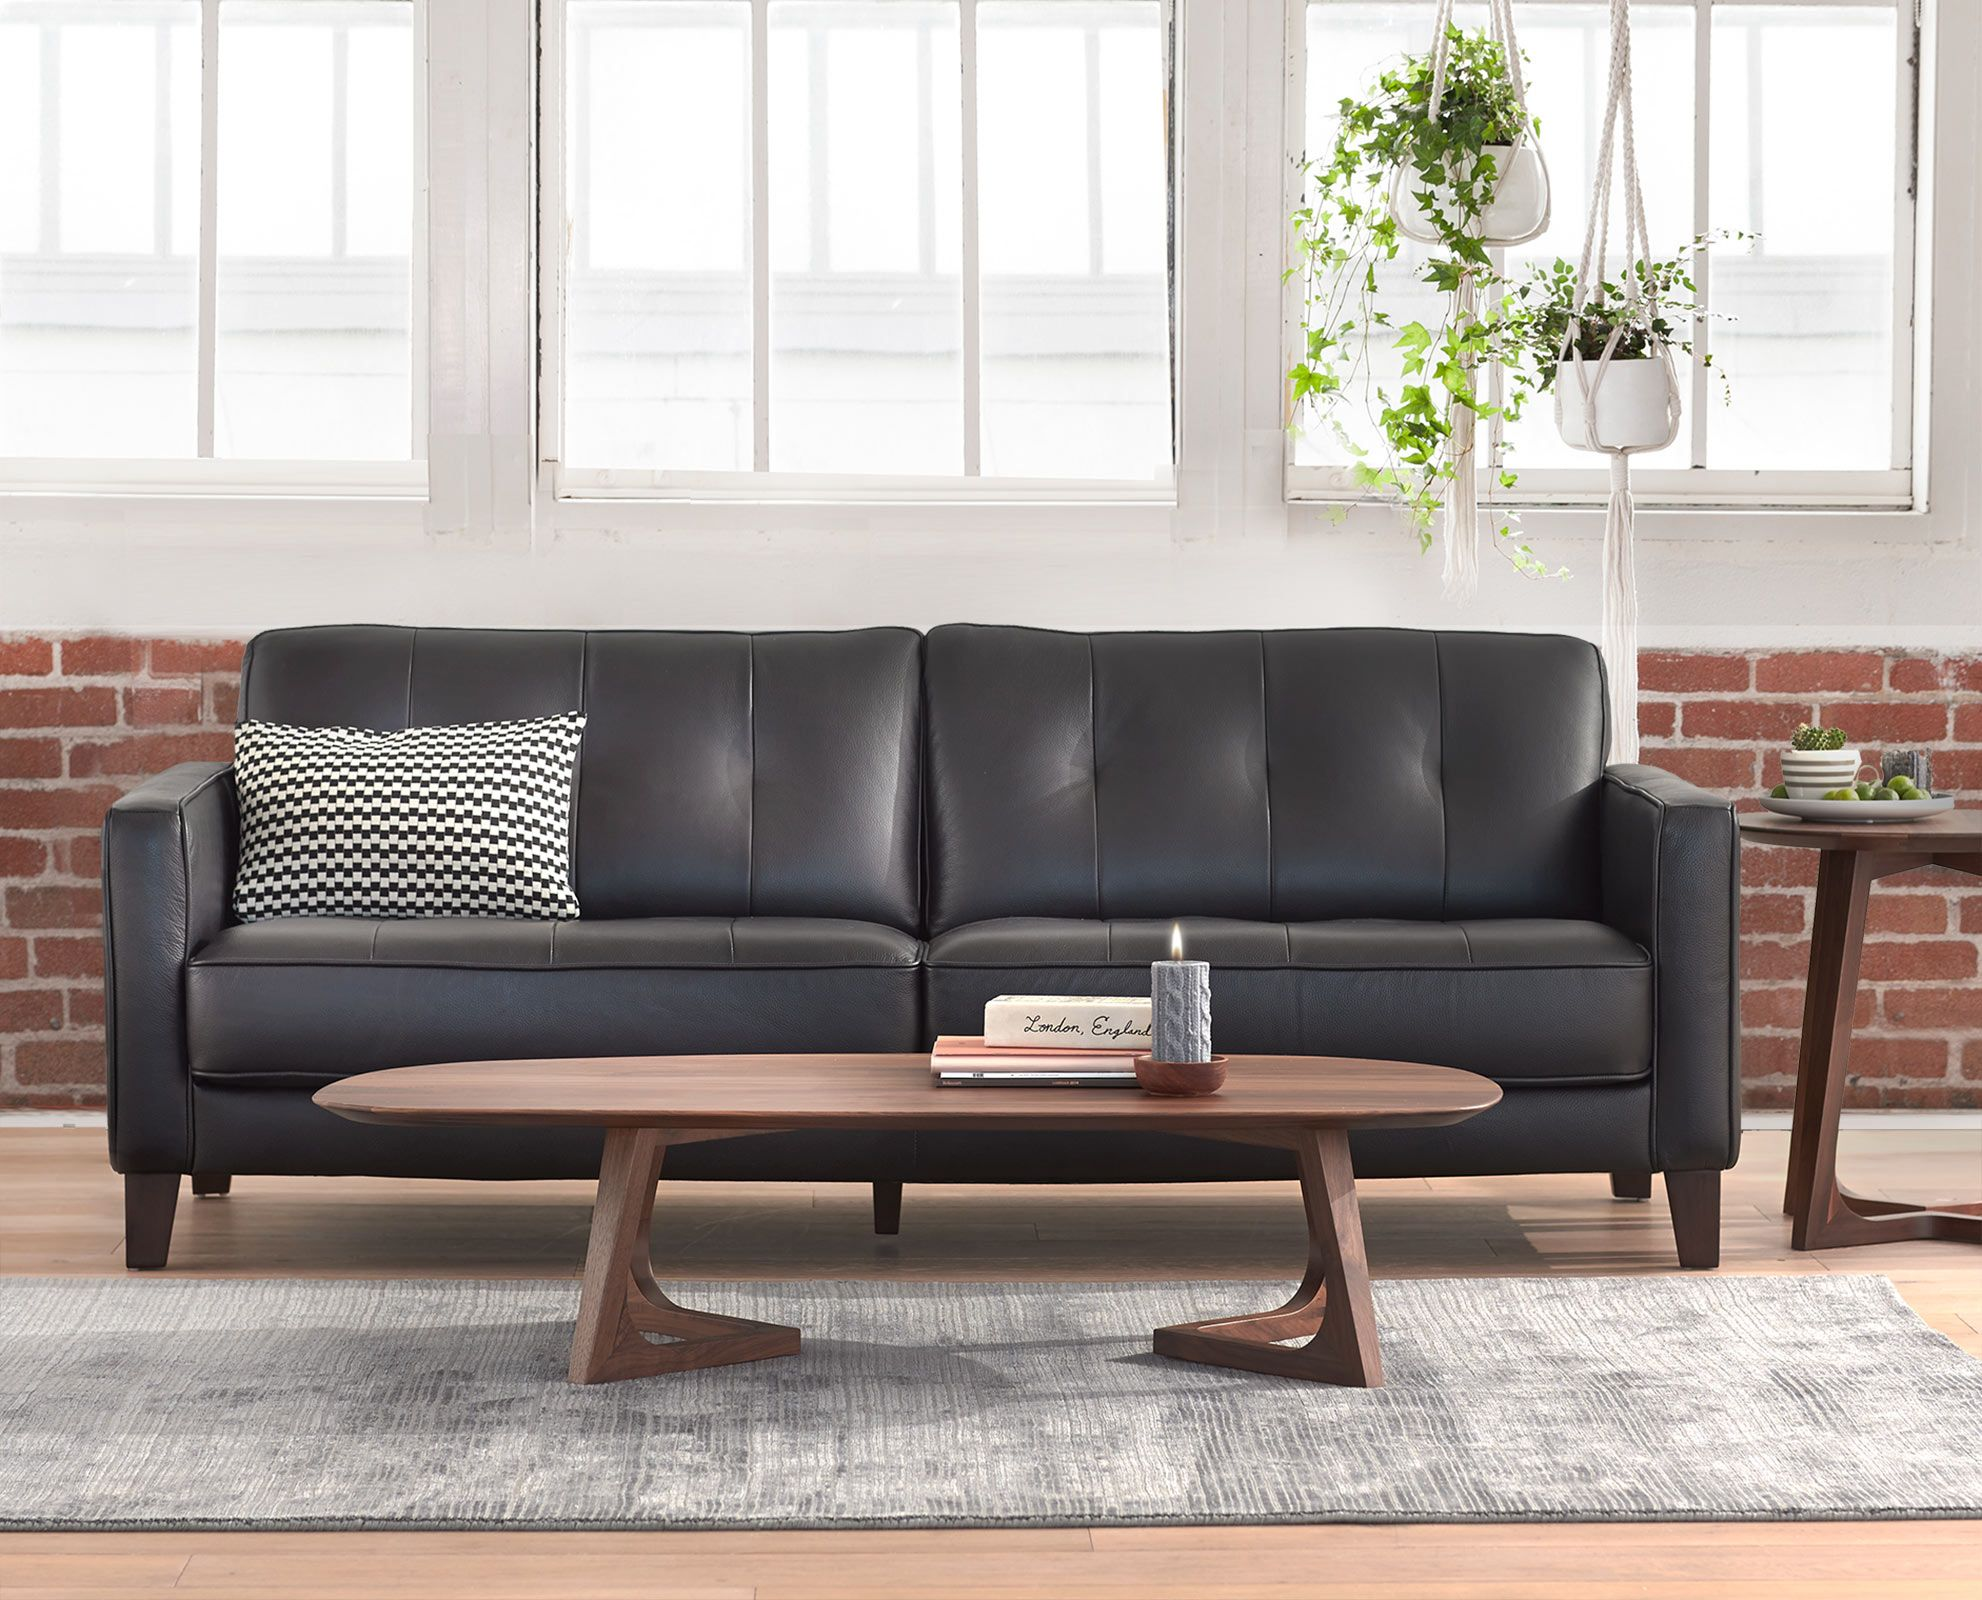 Marvelous Gregata Leather Sofa Black Living Room Furniture Gmtry Best Dining Table And Chair Ideas Images Gmtryco